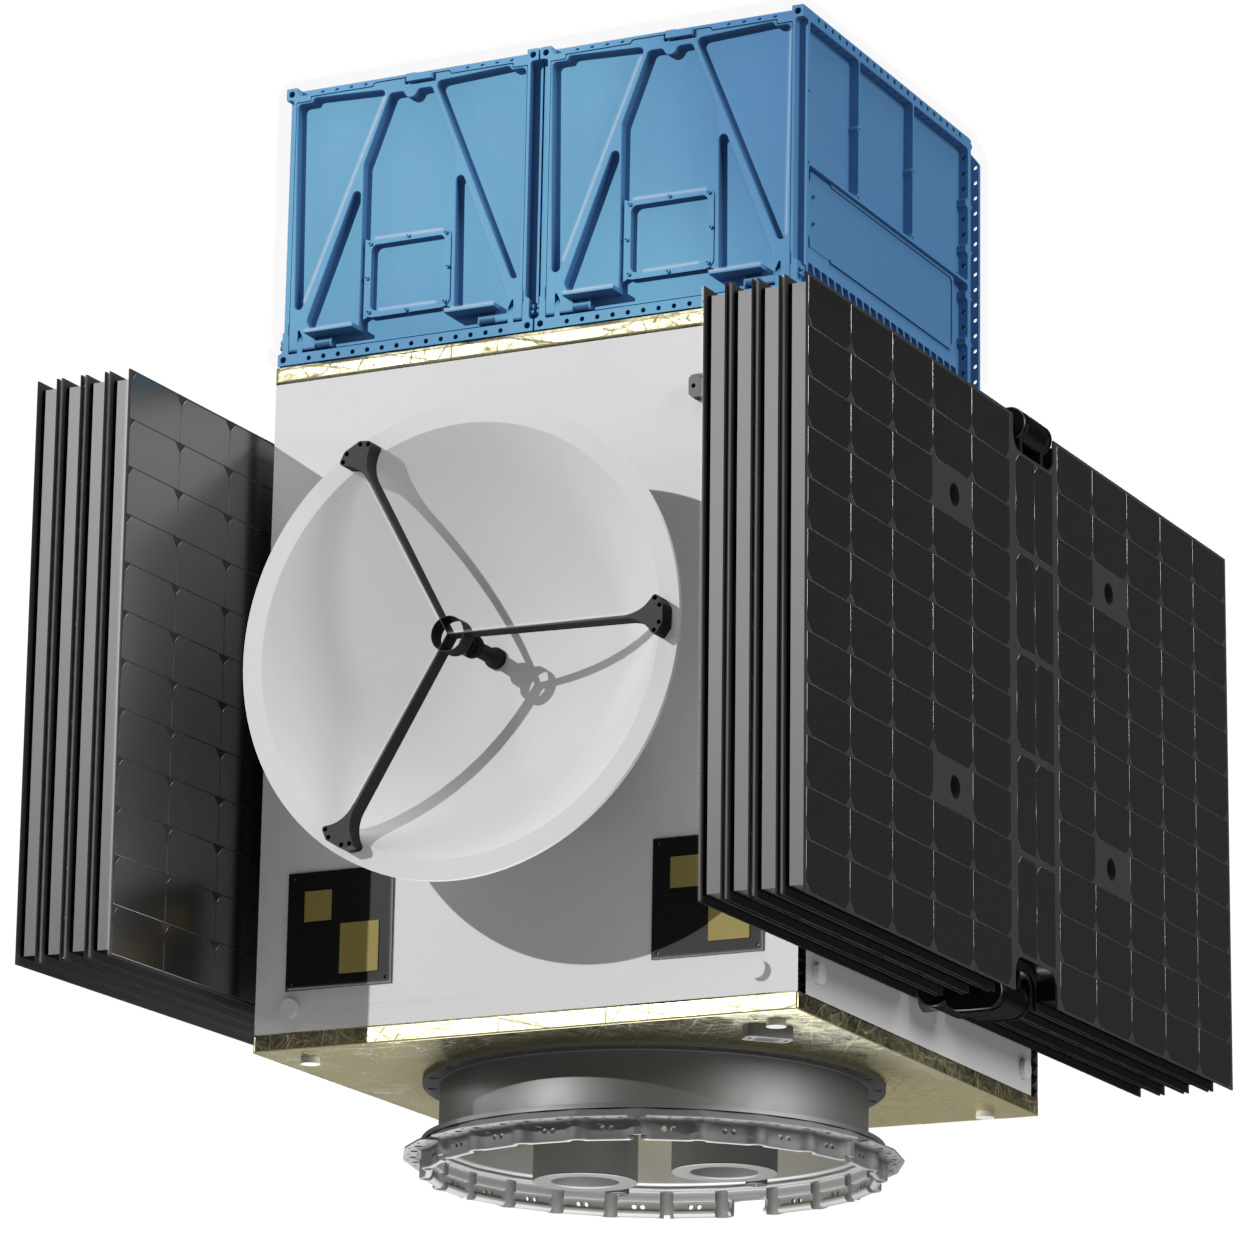 The MULTIPURPOSE ELECTRIC SATELLITE PLATFORM ESKIMO shown with folded solar wings at an isometric view from the side. On top of the satellite, 1-2 optional CubeSat Dispensers are attached instead of a payload. The dispensers have bright blue color and resemble structural boxes that can be opened to throw out the small satellites.